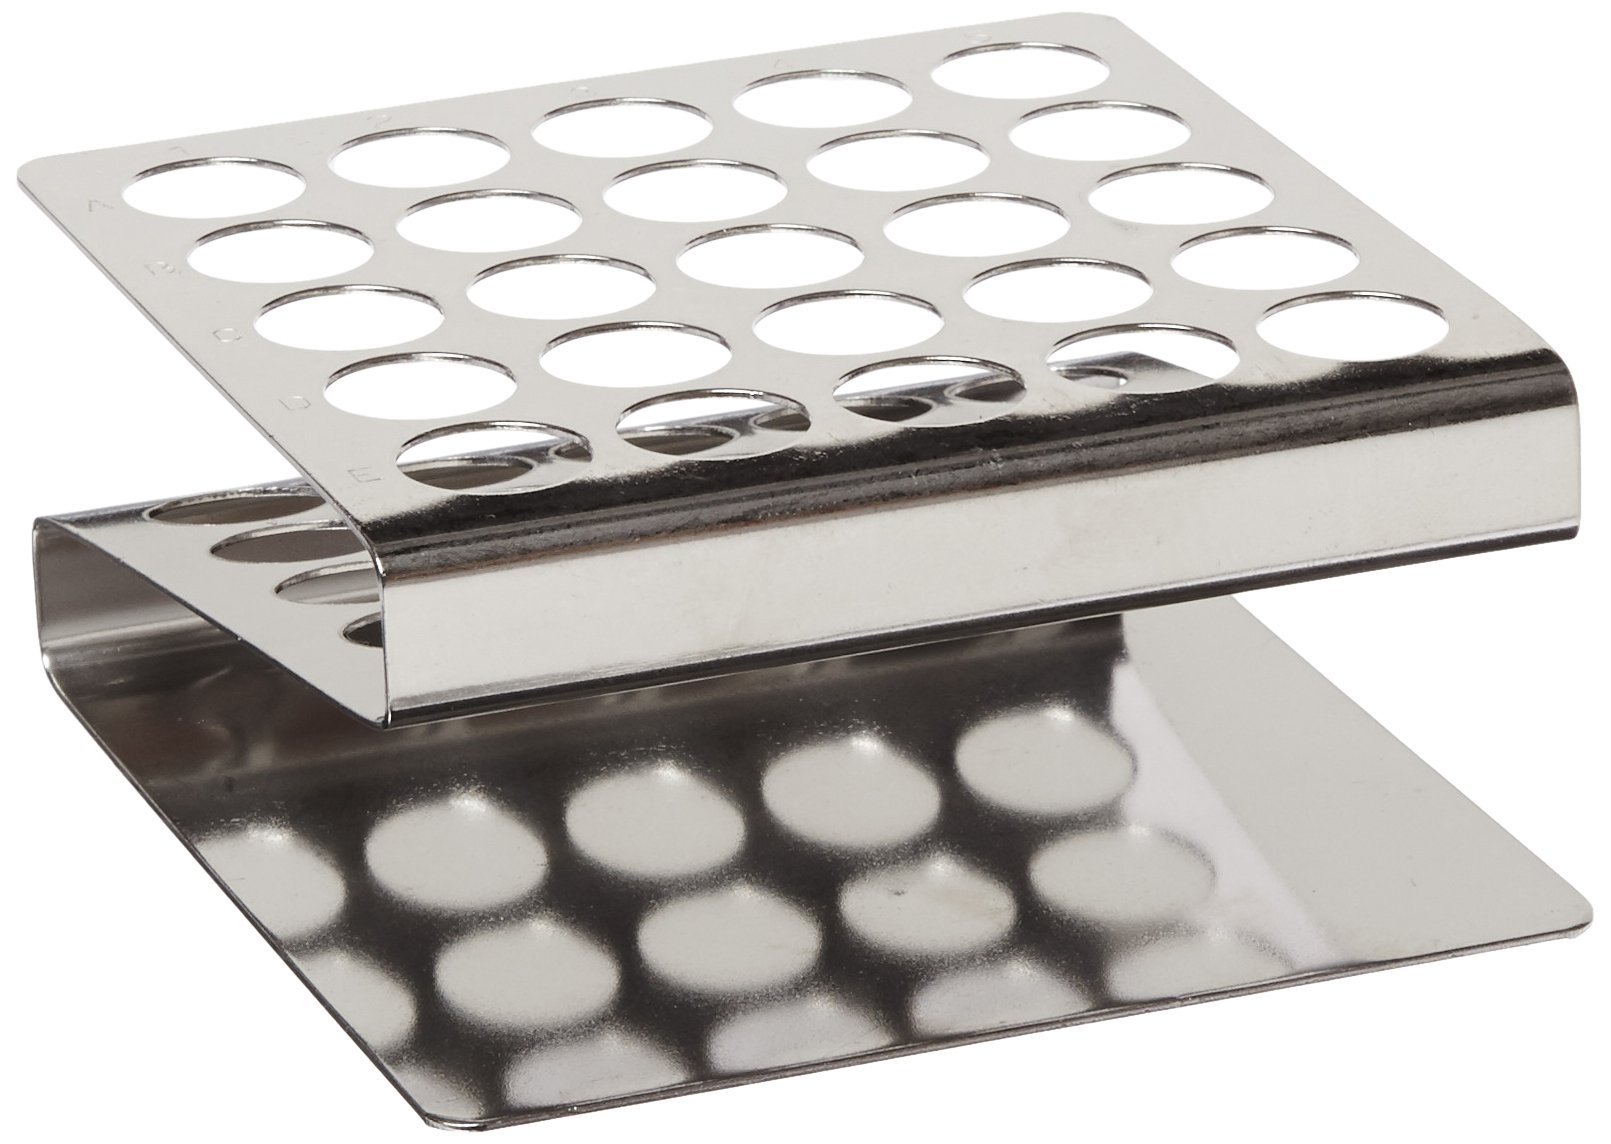 Globe Scientific 457200 Stainless Steel ''Z'' Shape Tube Rack, 16/17mm Tubes, 25-Place by Globe Scientific